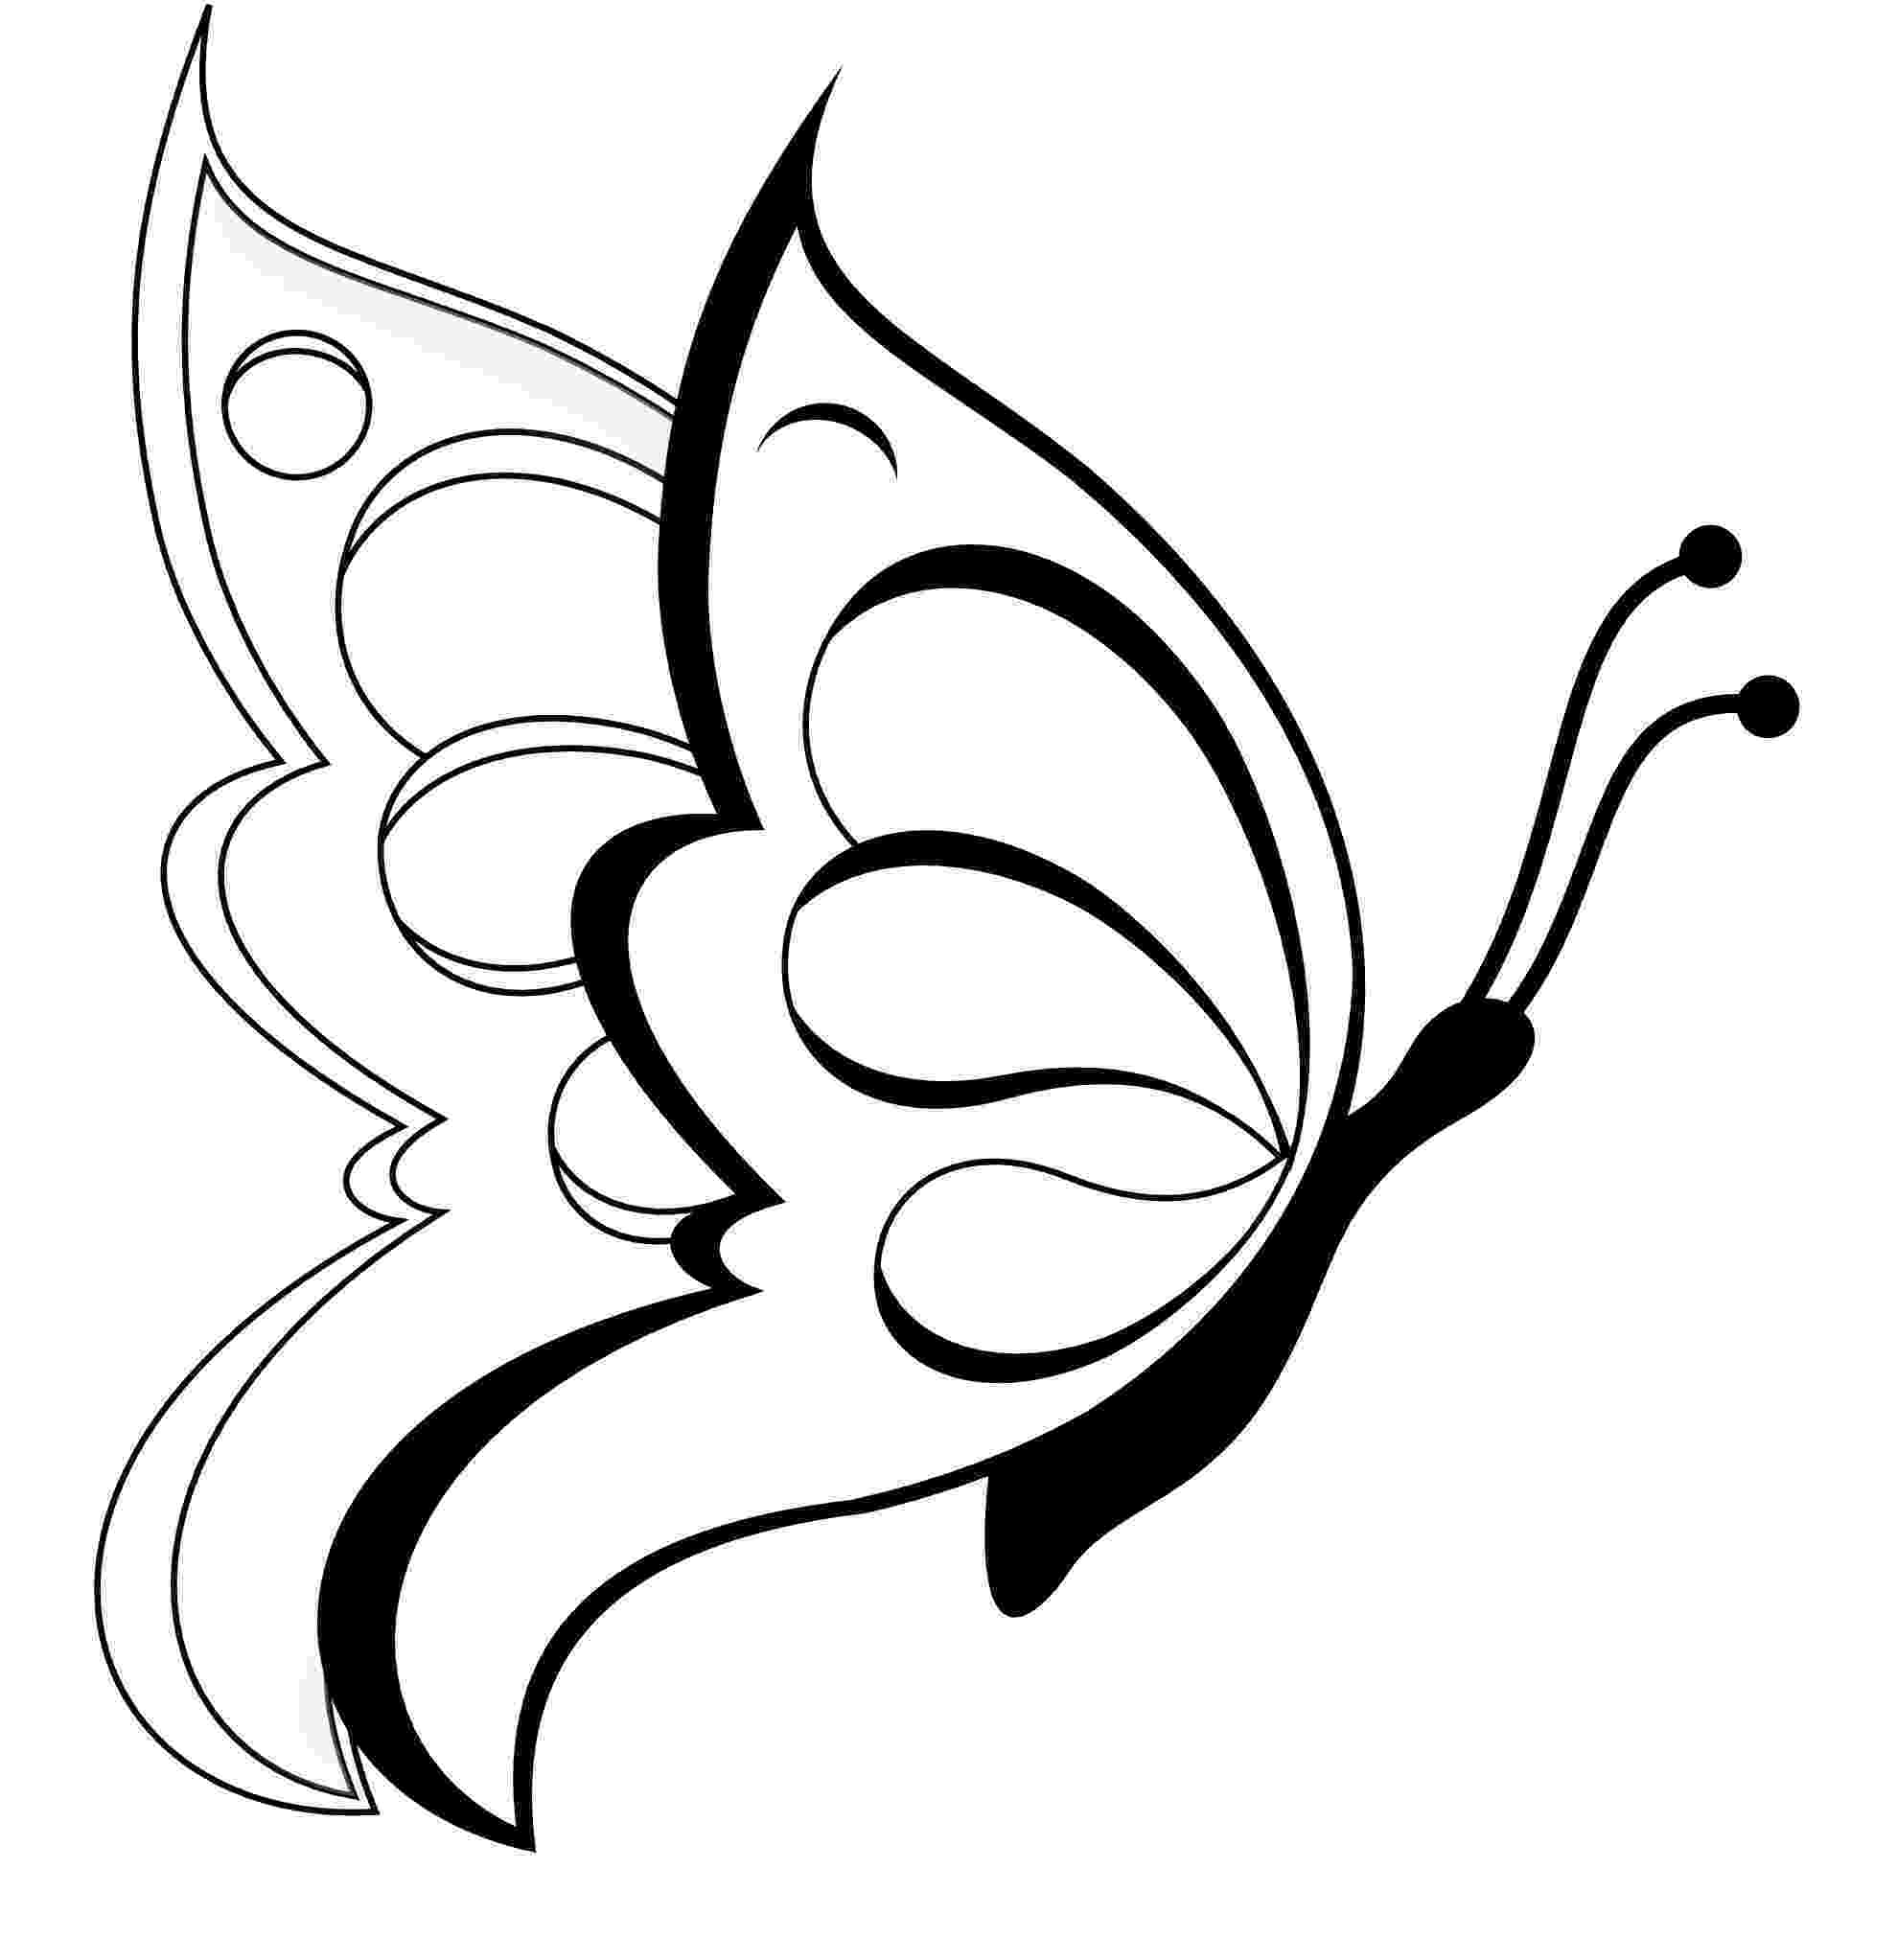 butterfly pictures to colour and print free printable butterfly coloring pages for kids pictures butterfly to colour and print